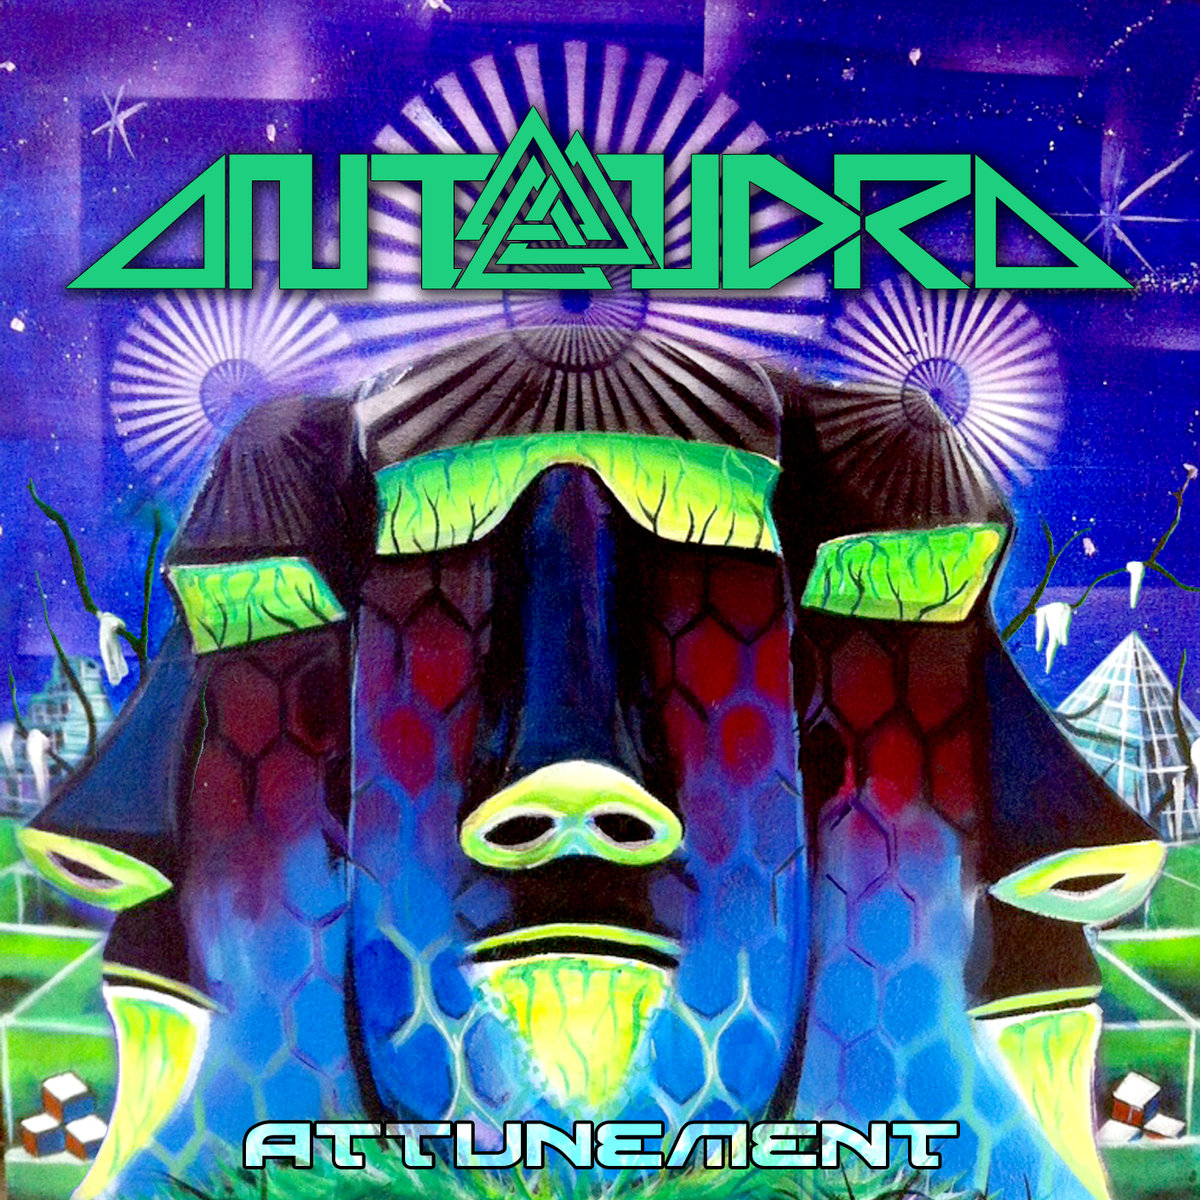 Antandra - Dazed and [A]mused @ 'Attunement EP' album (ambient, downtempo)